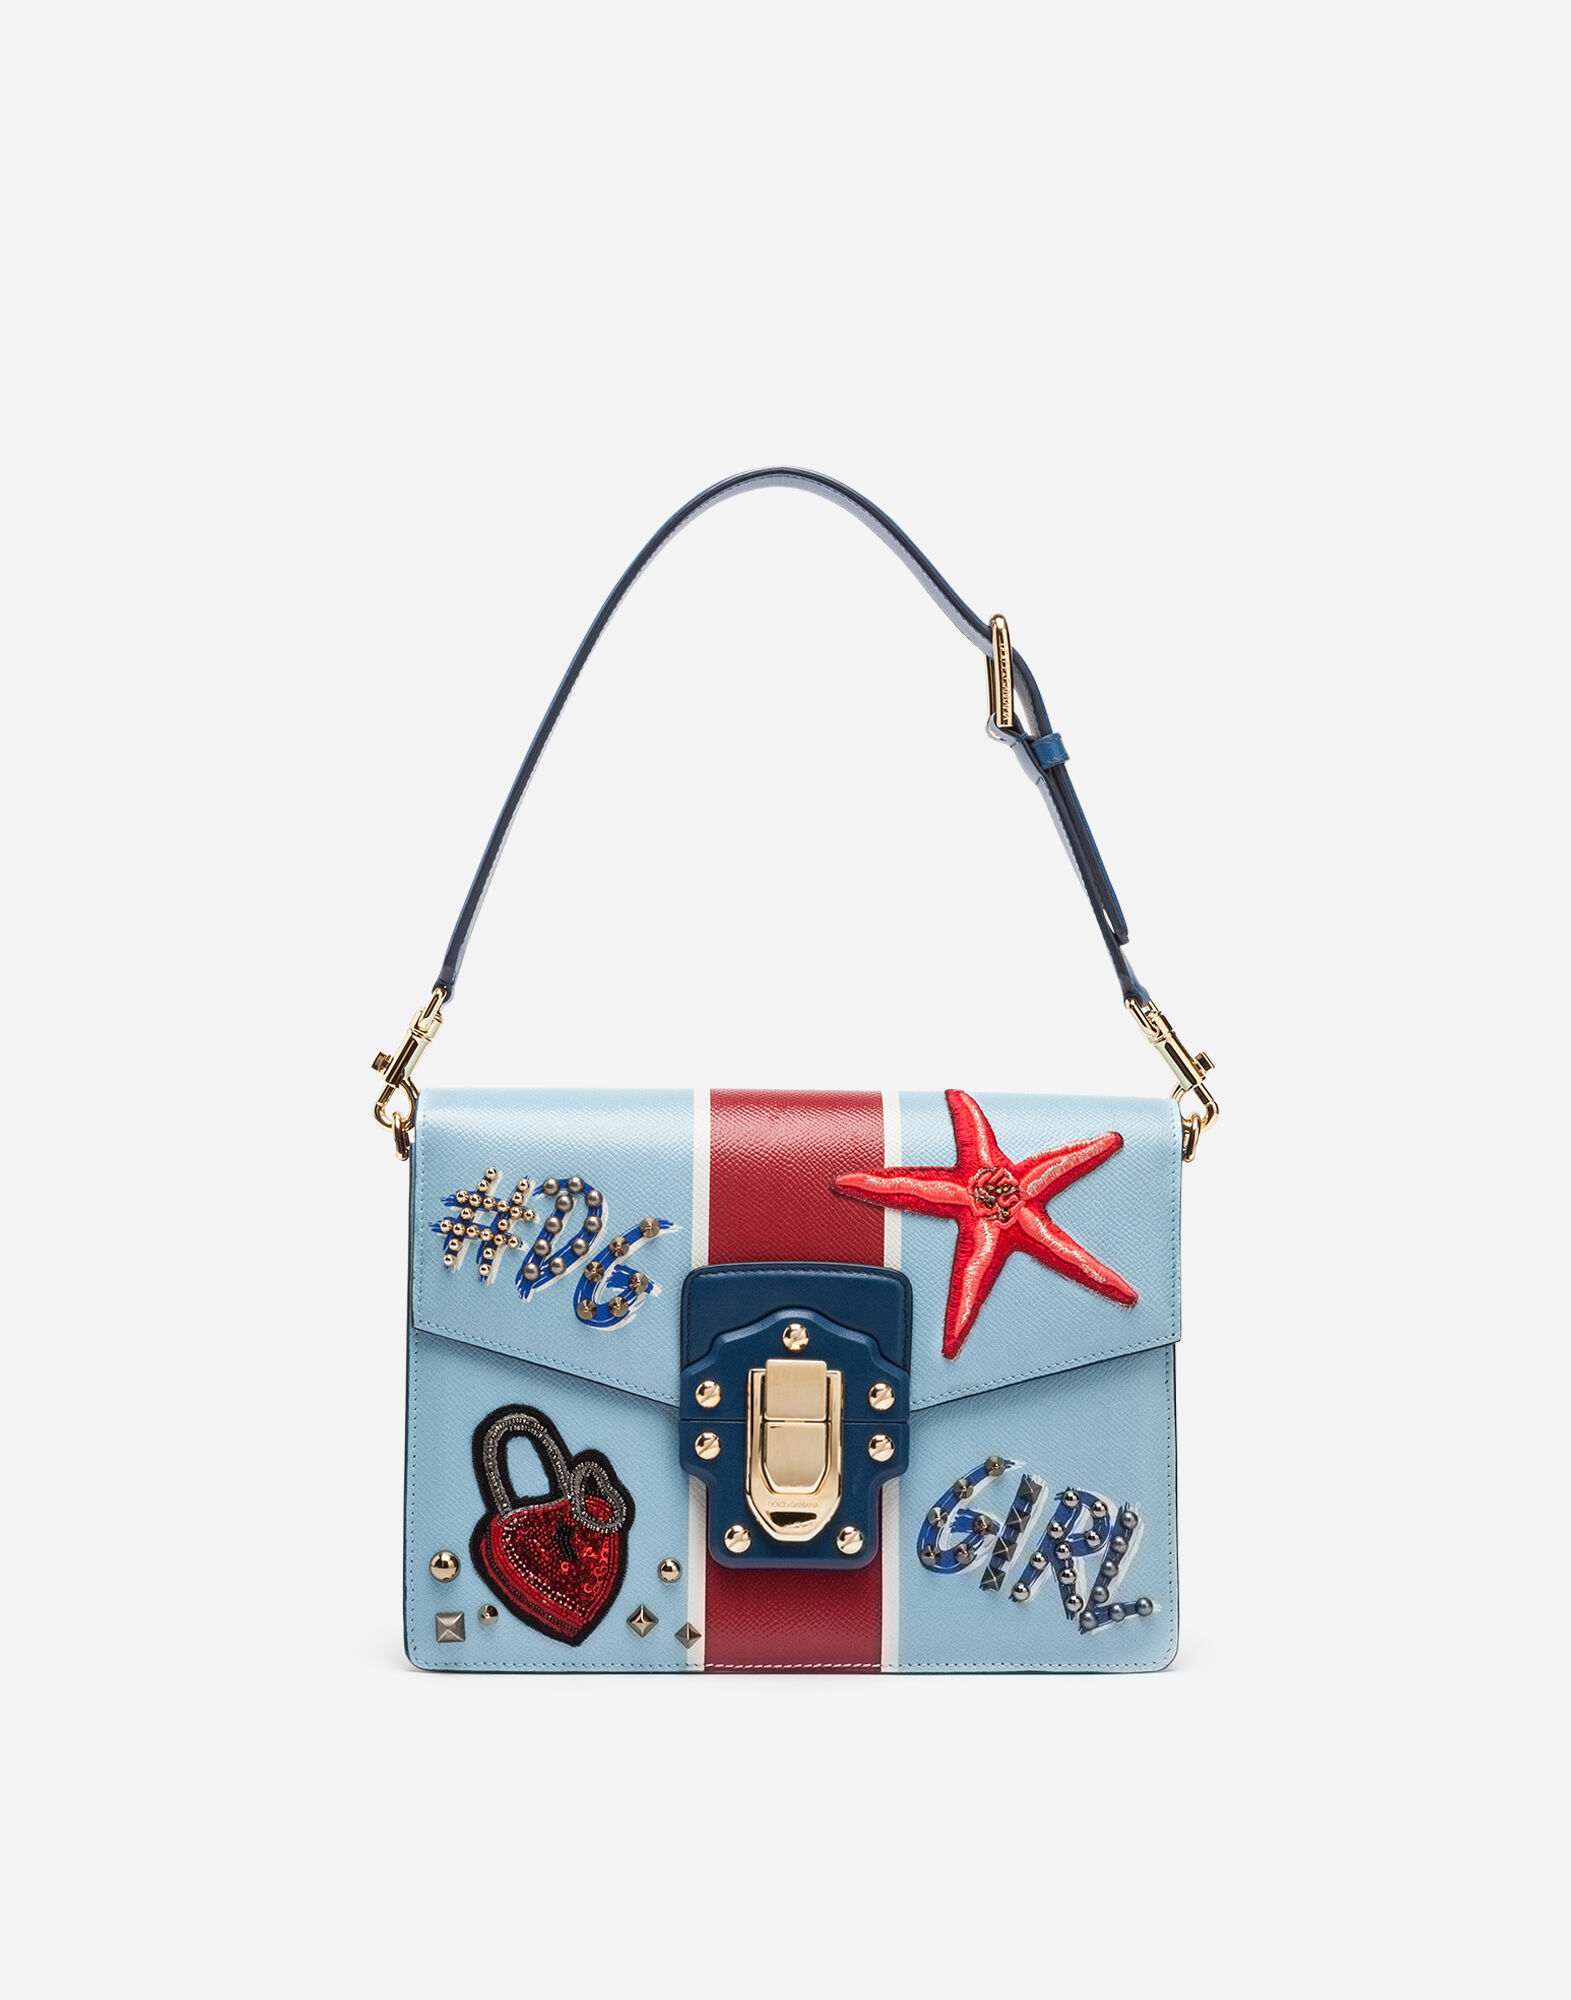 LUCIA SHOULDER BAG IN PRINTED CALFSKIN WITH EMBROIDERY